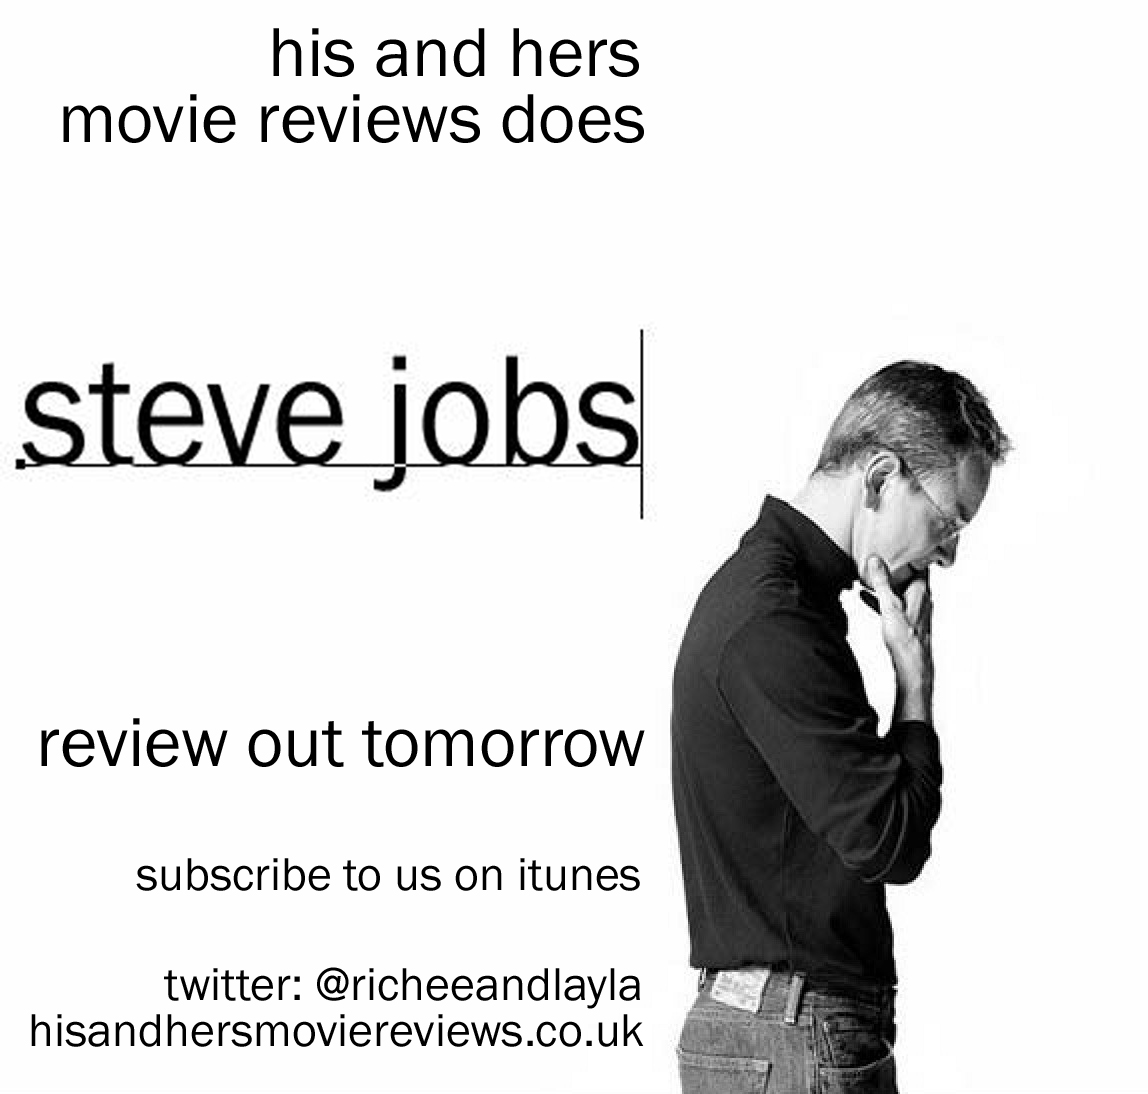 a review of the movie steve jobs Movie review: steve jobs (2015) 01 november 2015 | reviews | by yasmin kleinbart when the idea for a new steve jobs movie was announced, the general consensus was a giant eye roll 2012's jobs was a box office flop, resulting in people's reluctance to hear the ceo's story once more.